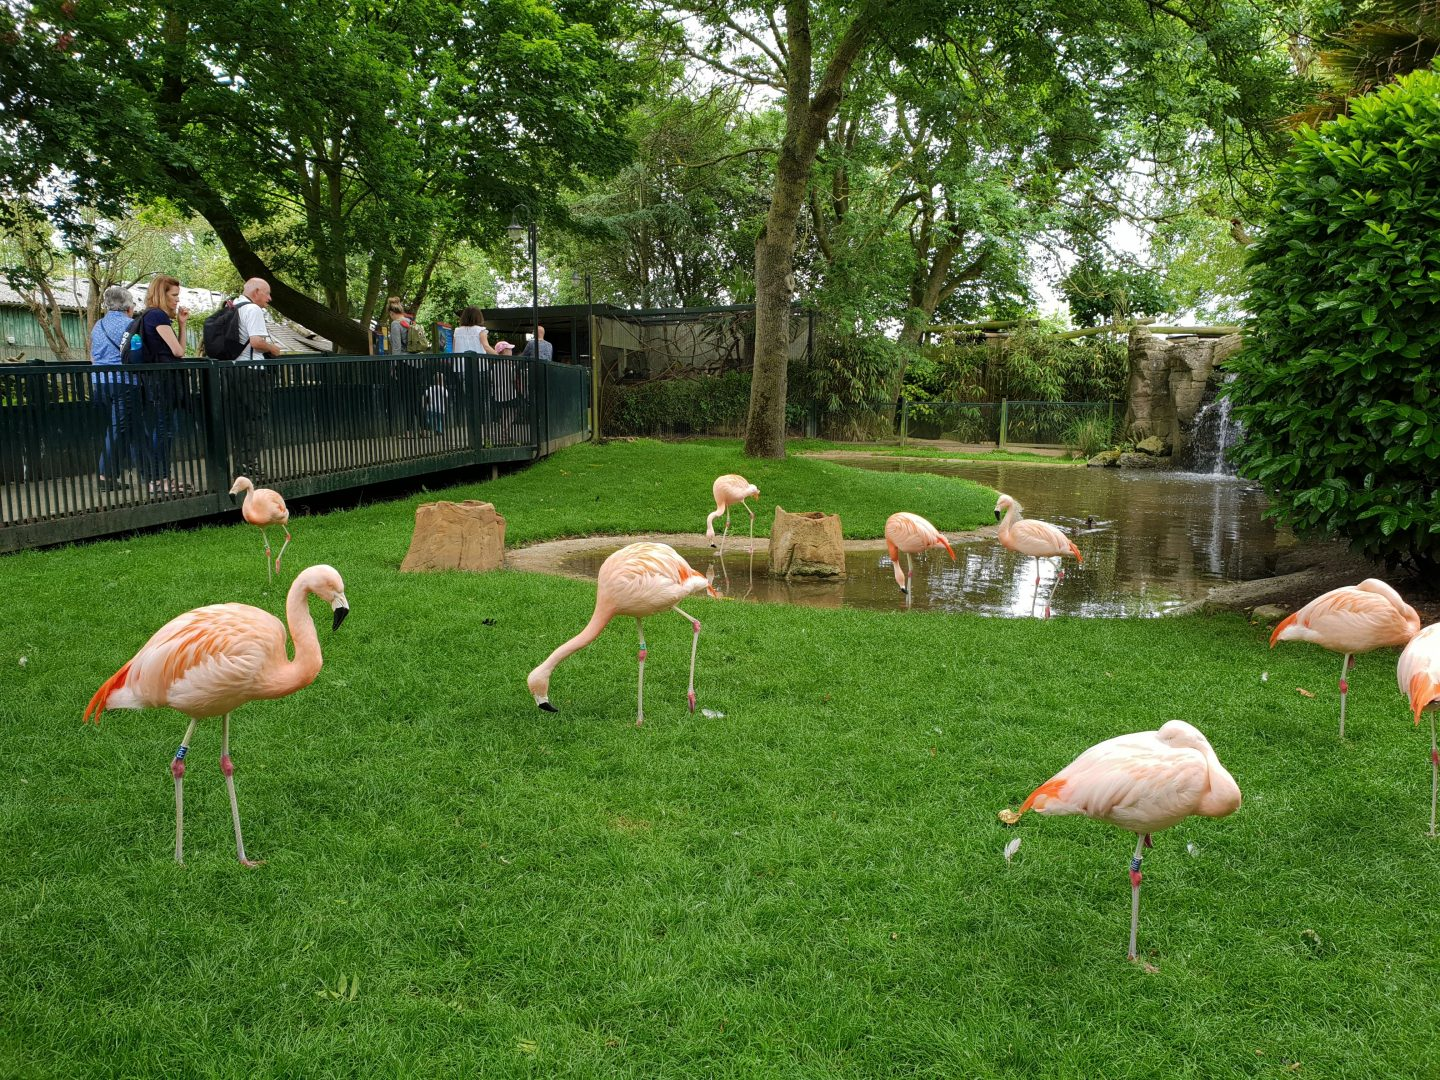 Flamingos at Drusillas park